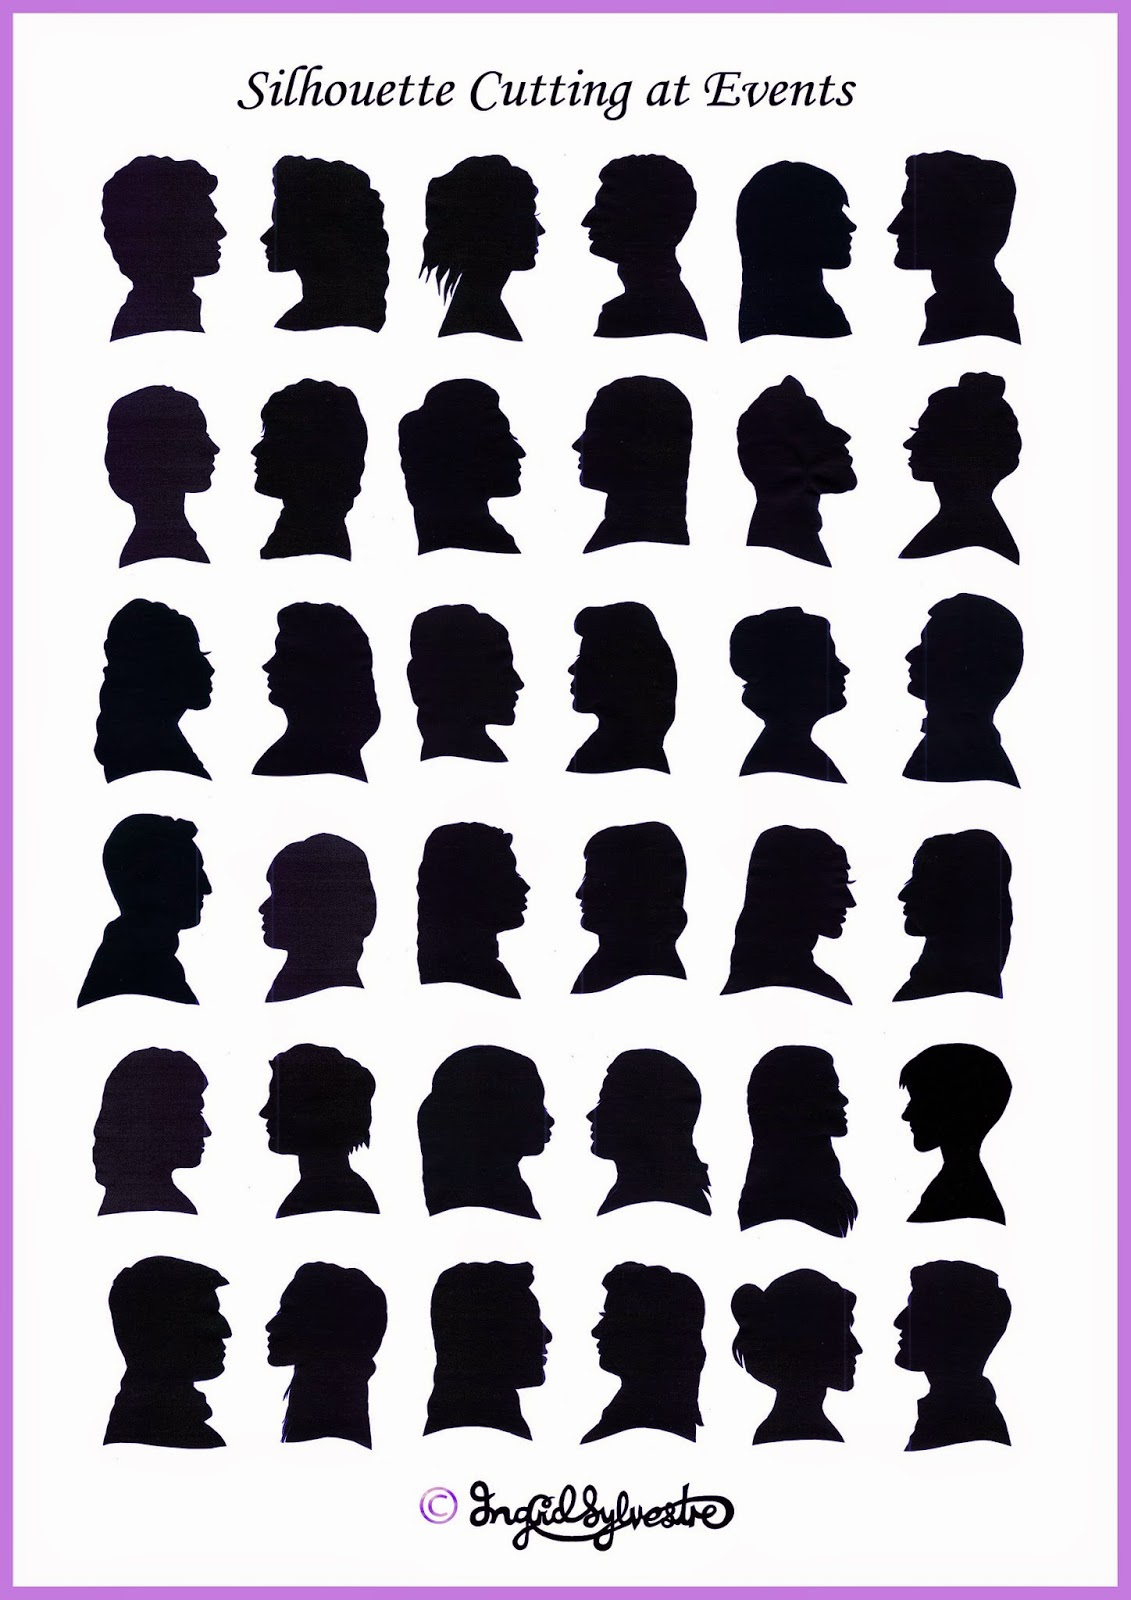 Silhouettes North East Wedding Entertainment ideas Party Entertainment Christmas Party Entertainment Corporate Events Wedding Caricatures and Silhouettes Ingrid Sylvestre UK caricaturist & silhouette artist North East Newcastle upon Tyne Durham Sunderland Middlesbrough Teesside Northumberland Yorkshire